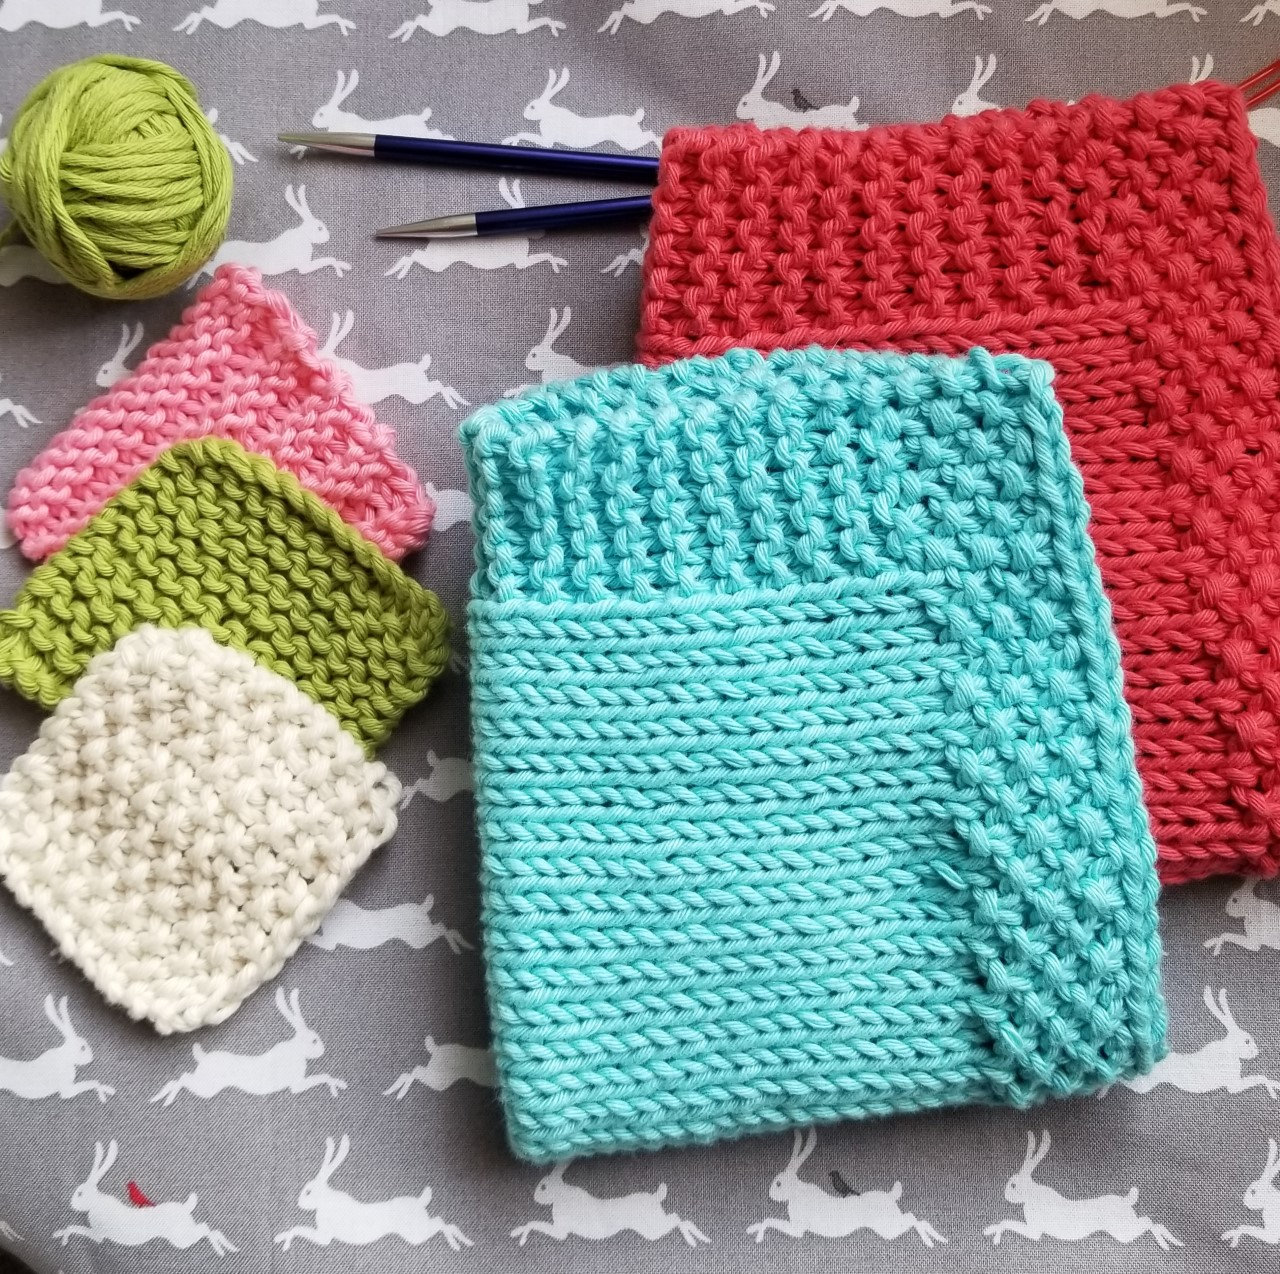 BEGINNERS KNITTING - OVER 2 AFTERNOONS